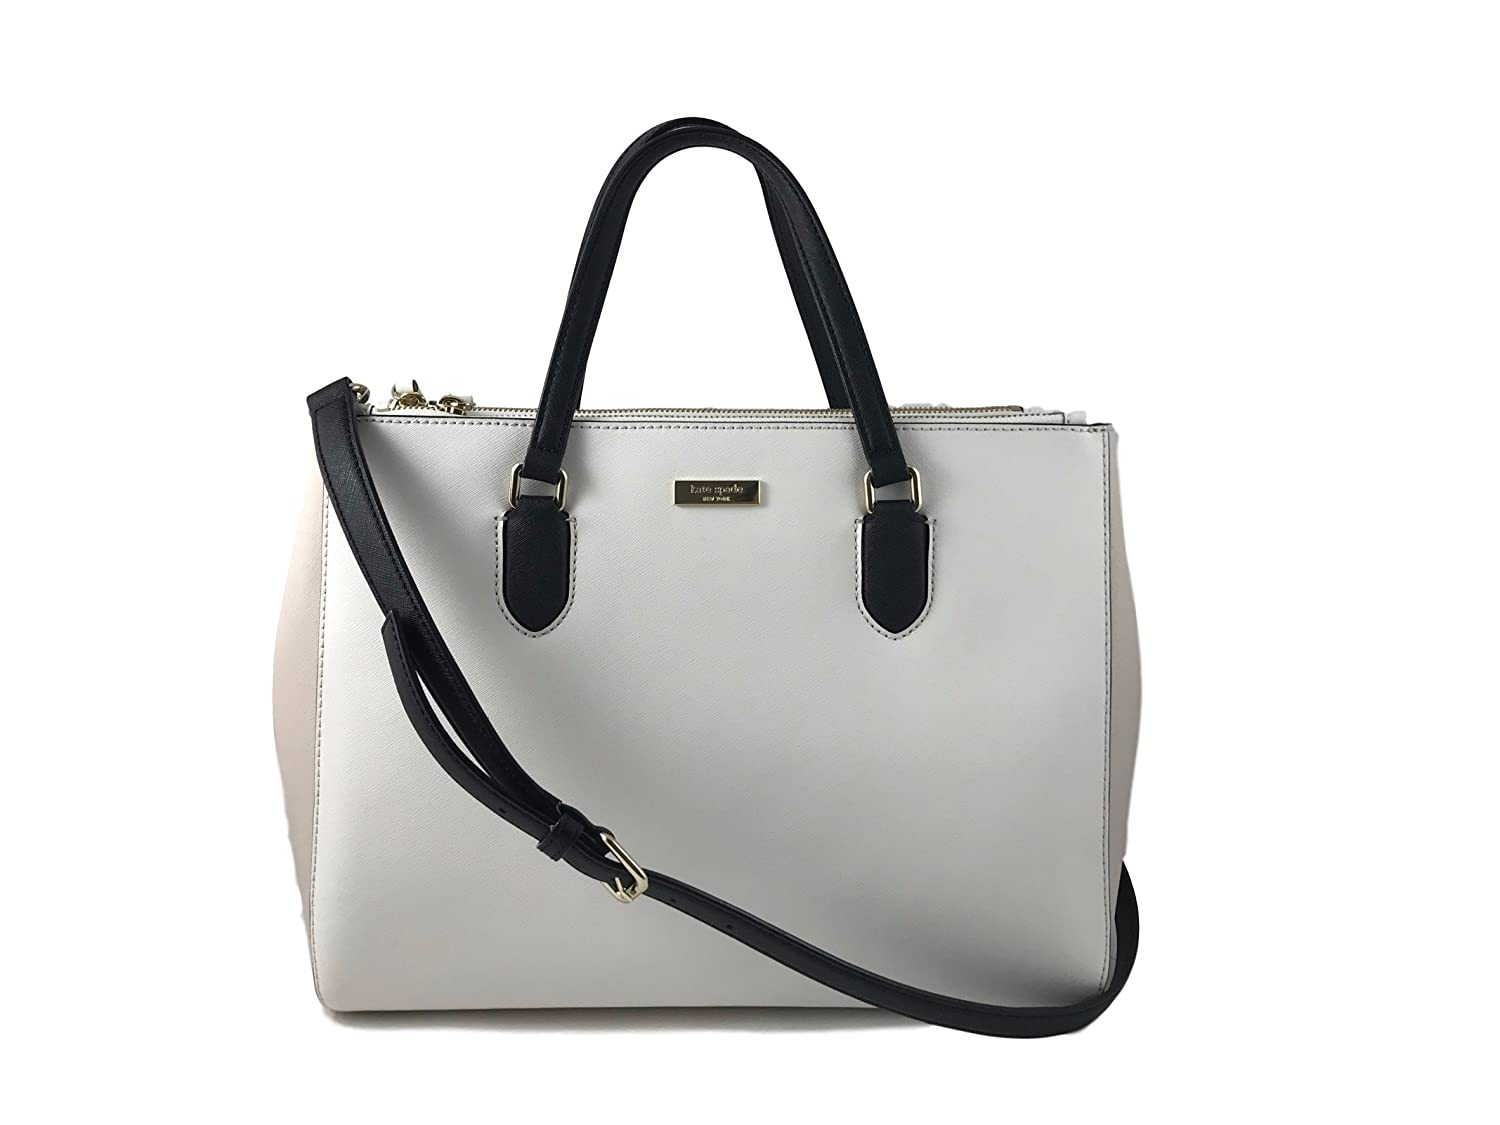 Kate Spade Leighann Laurel Way Saffiano Leather Tote Shoulder Bag Purse Handbag for Work School Office Travel, Cream Black 00_NPOXSUWC_02